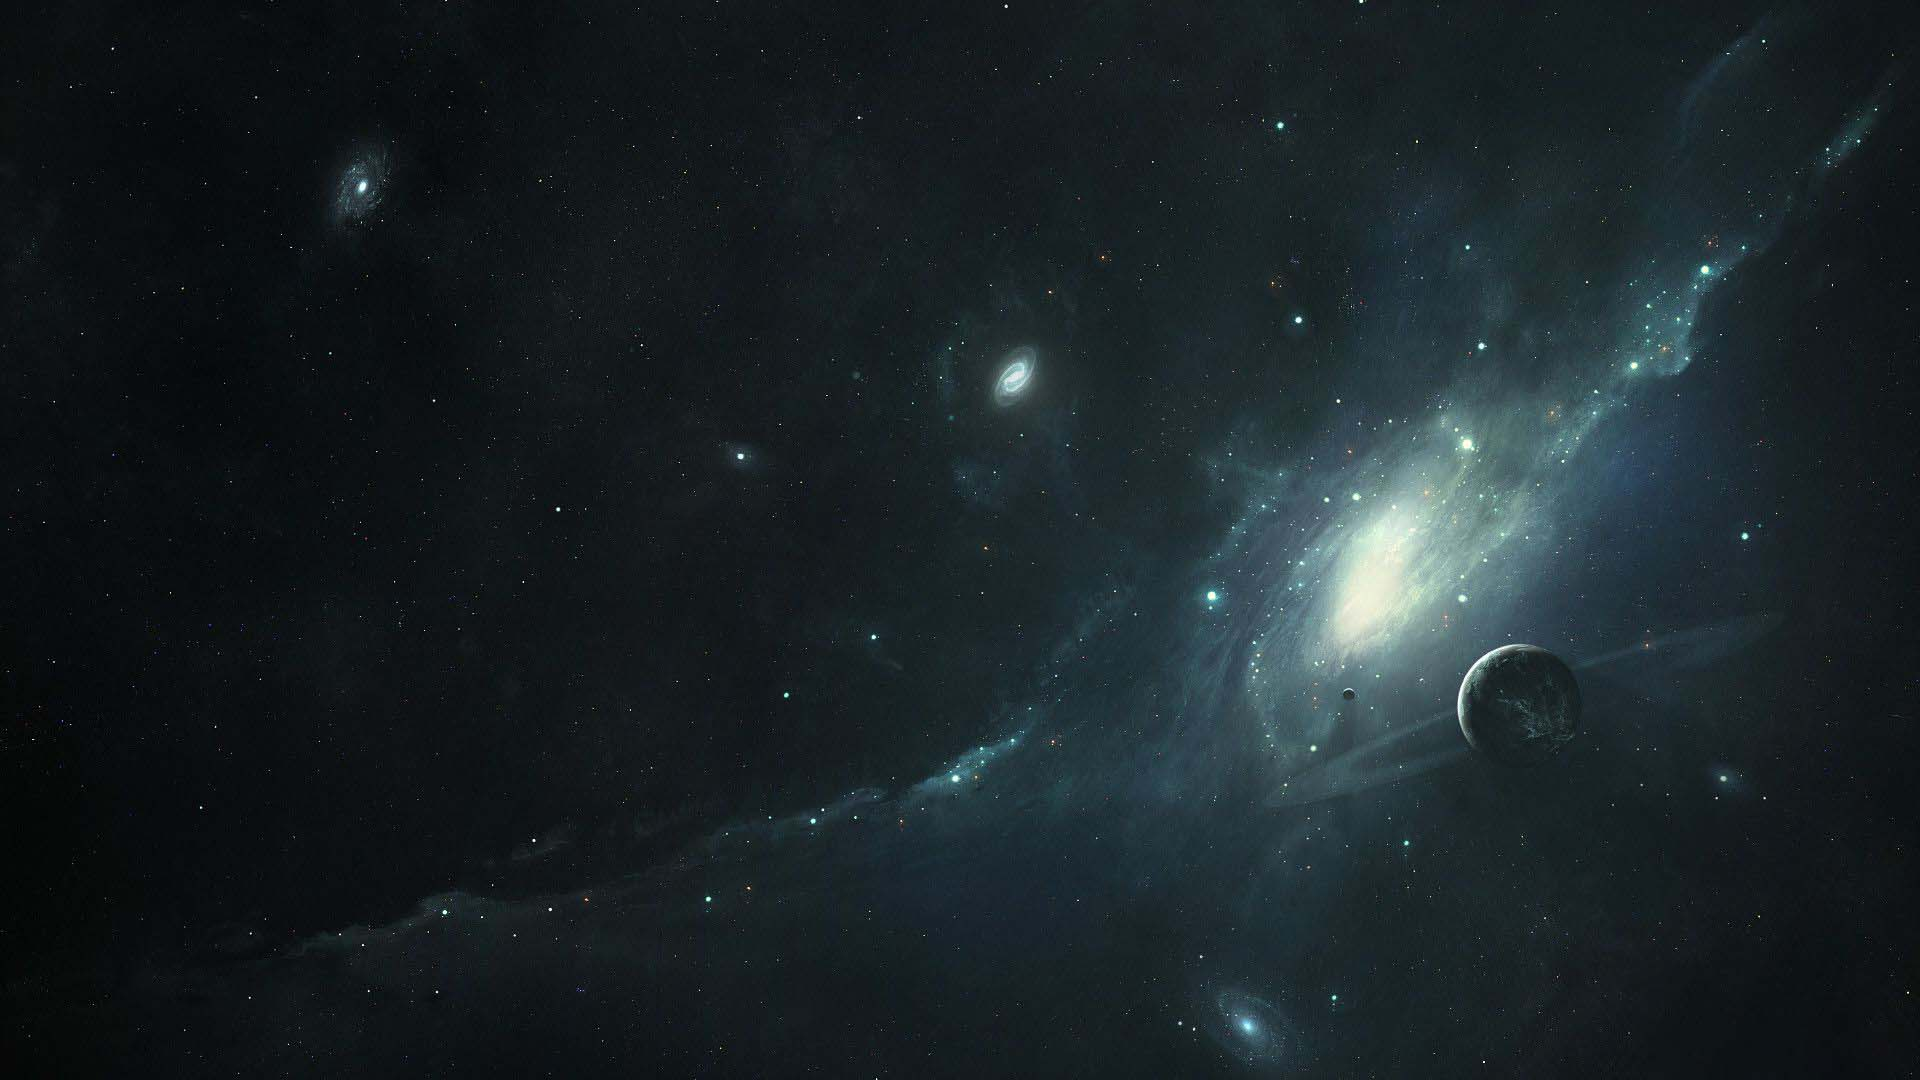 Dark galaxy wallpaper full hd